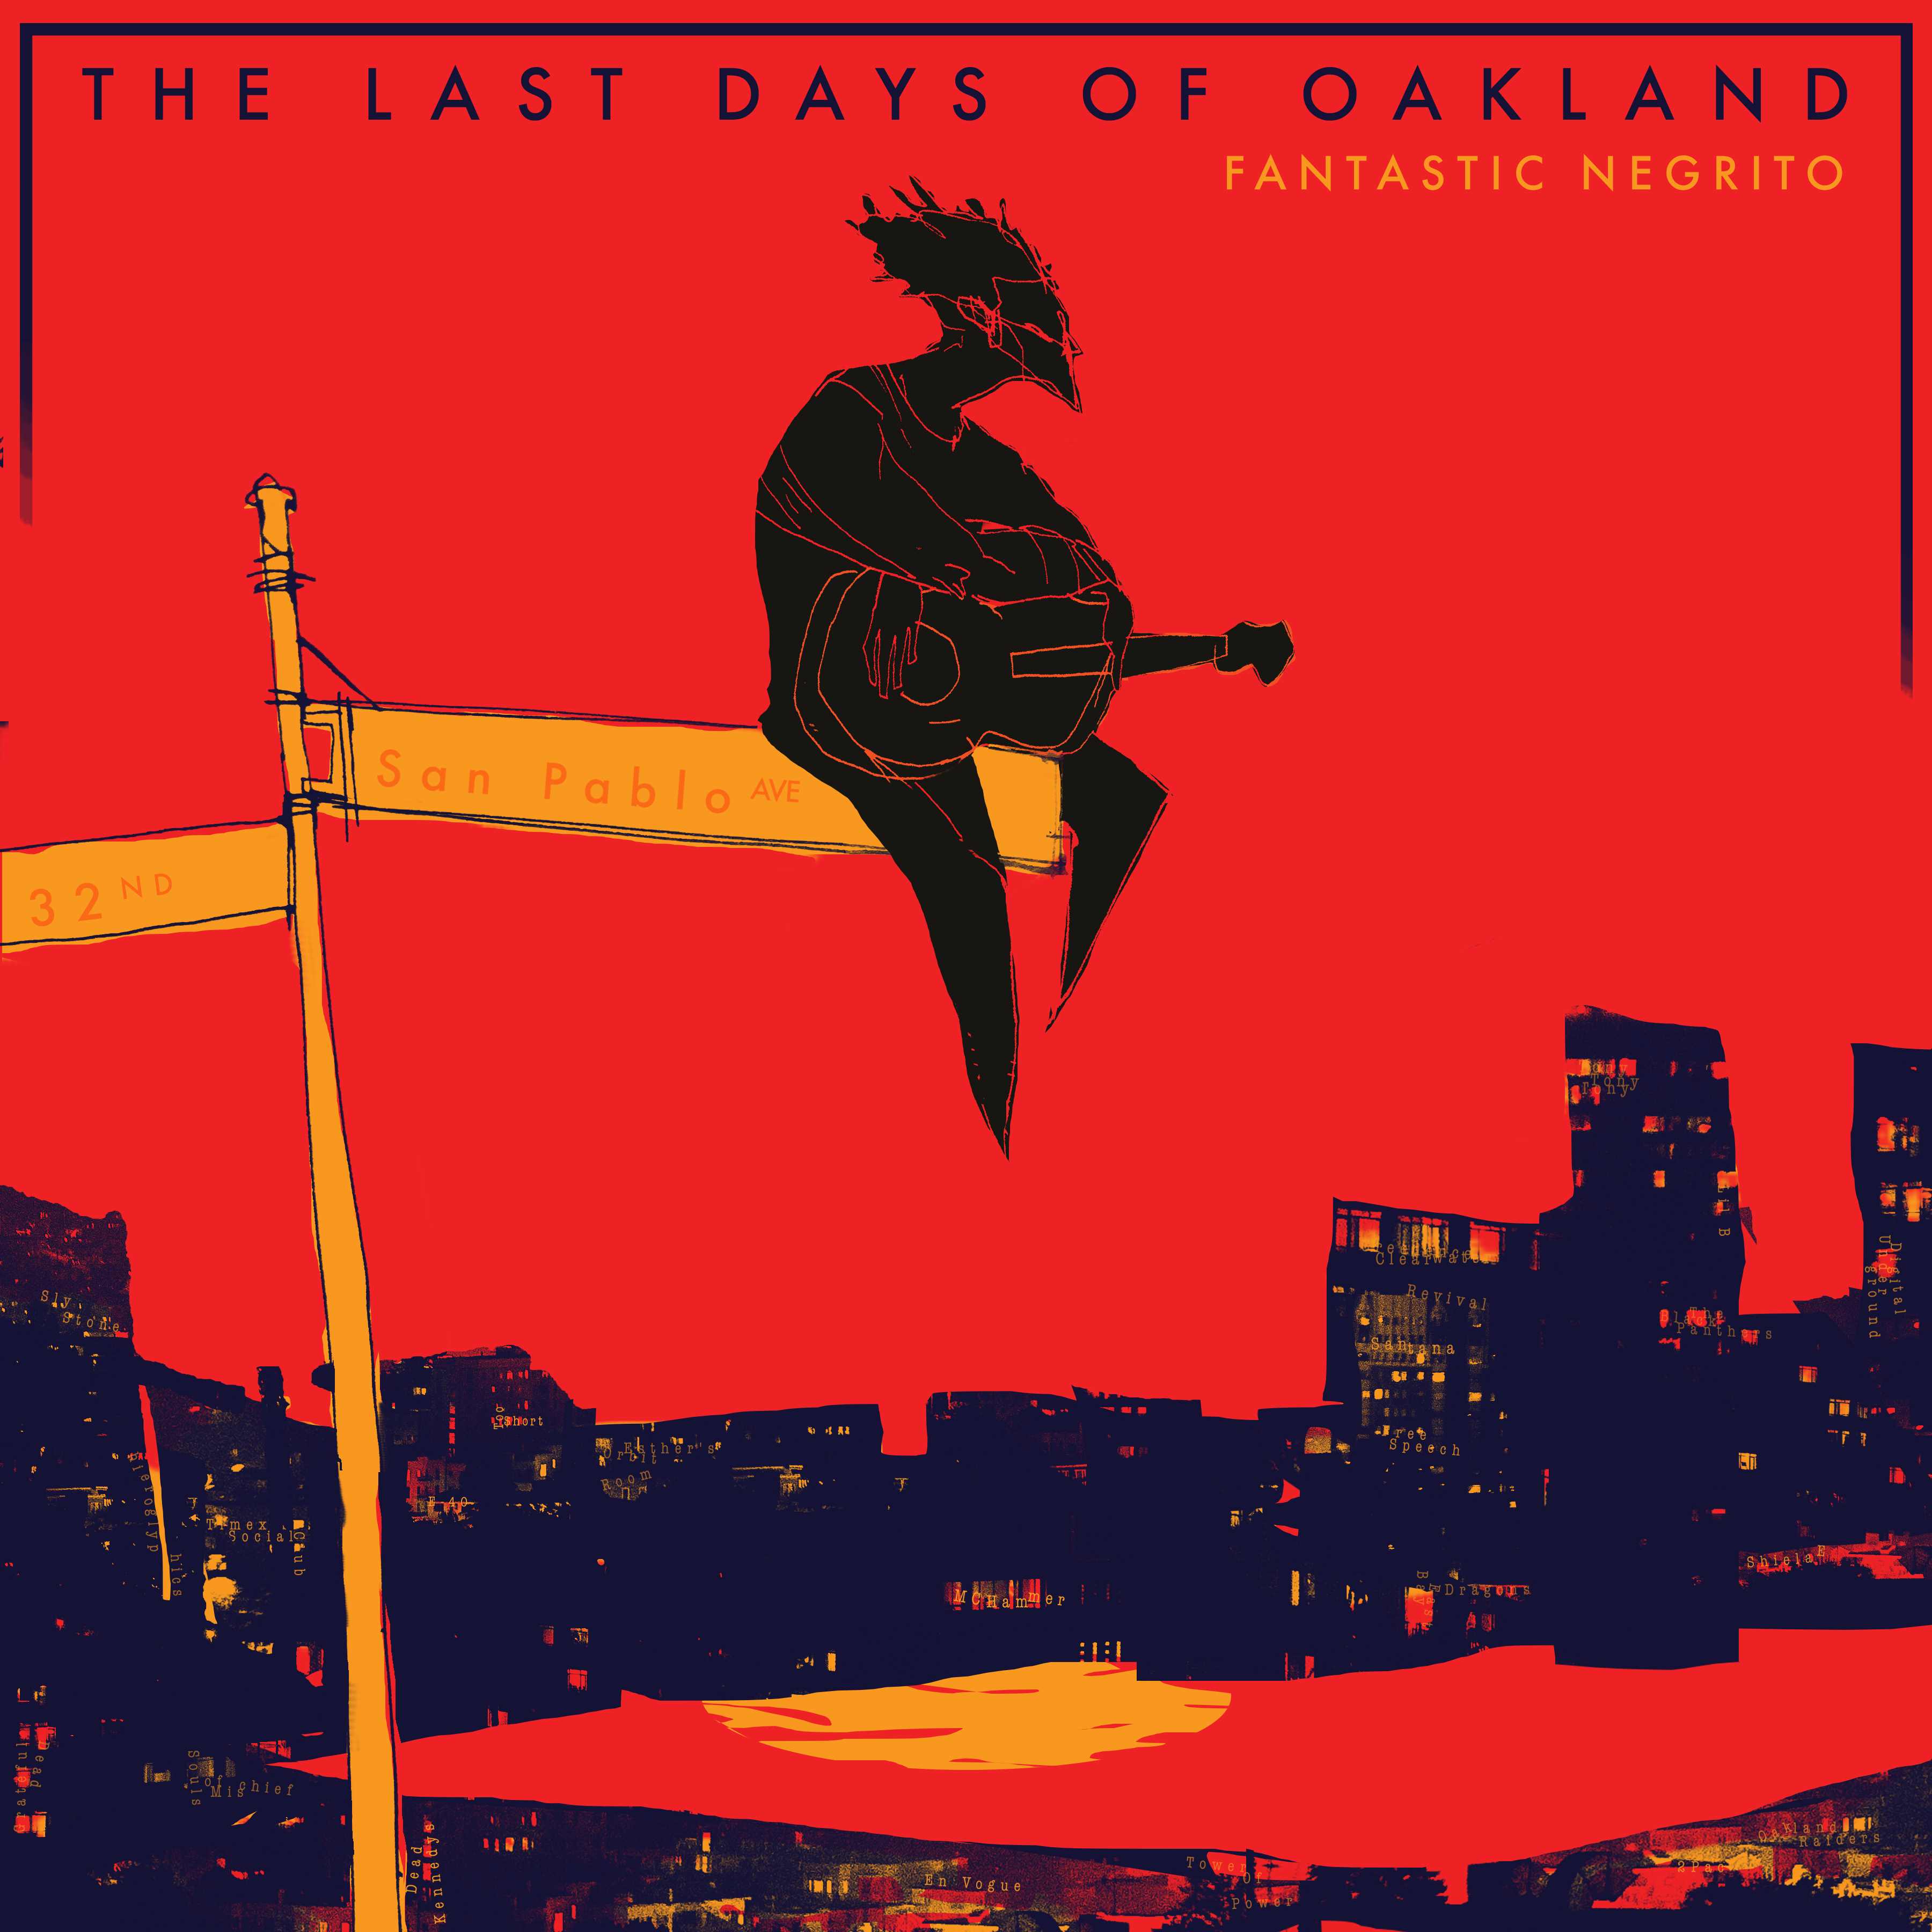 'The Last Days of Oakland' — Fantastic Negrito